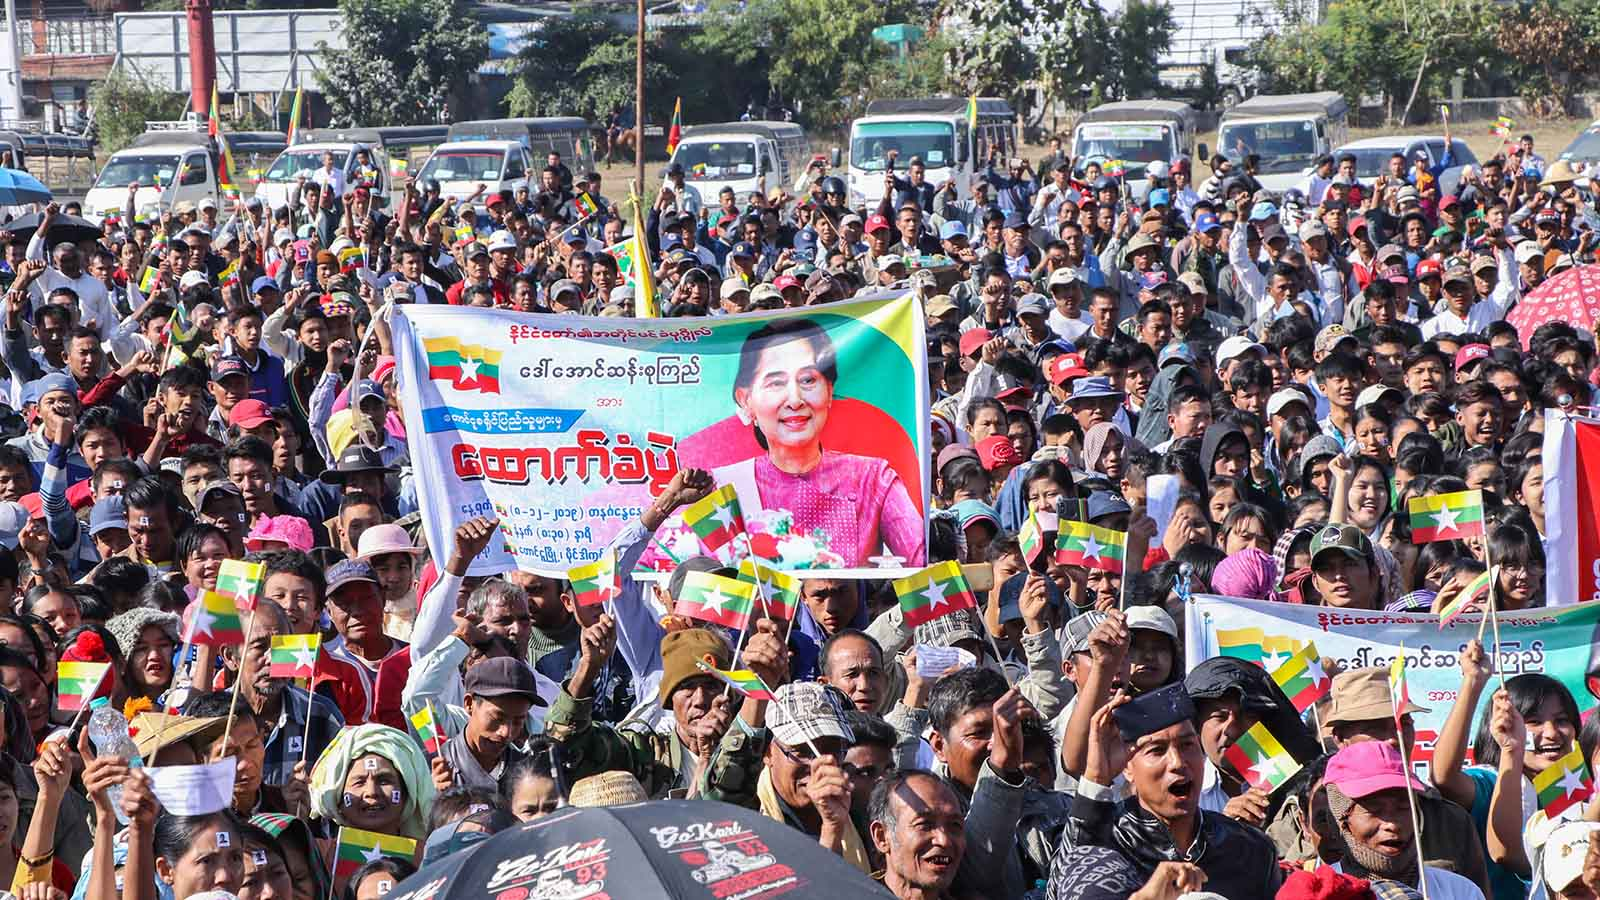 The mass rally in Toungoo supports State Counsellor Daw Aung San Suu Kyi who will contest the case filed by Gambia at the International Court of Justice. Photo: MNA